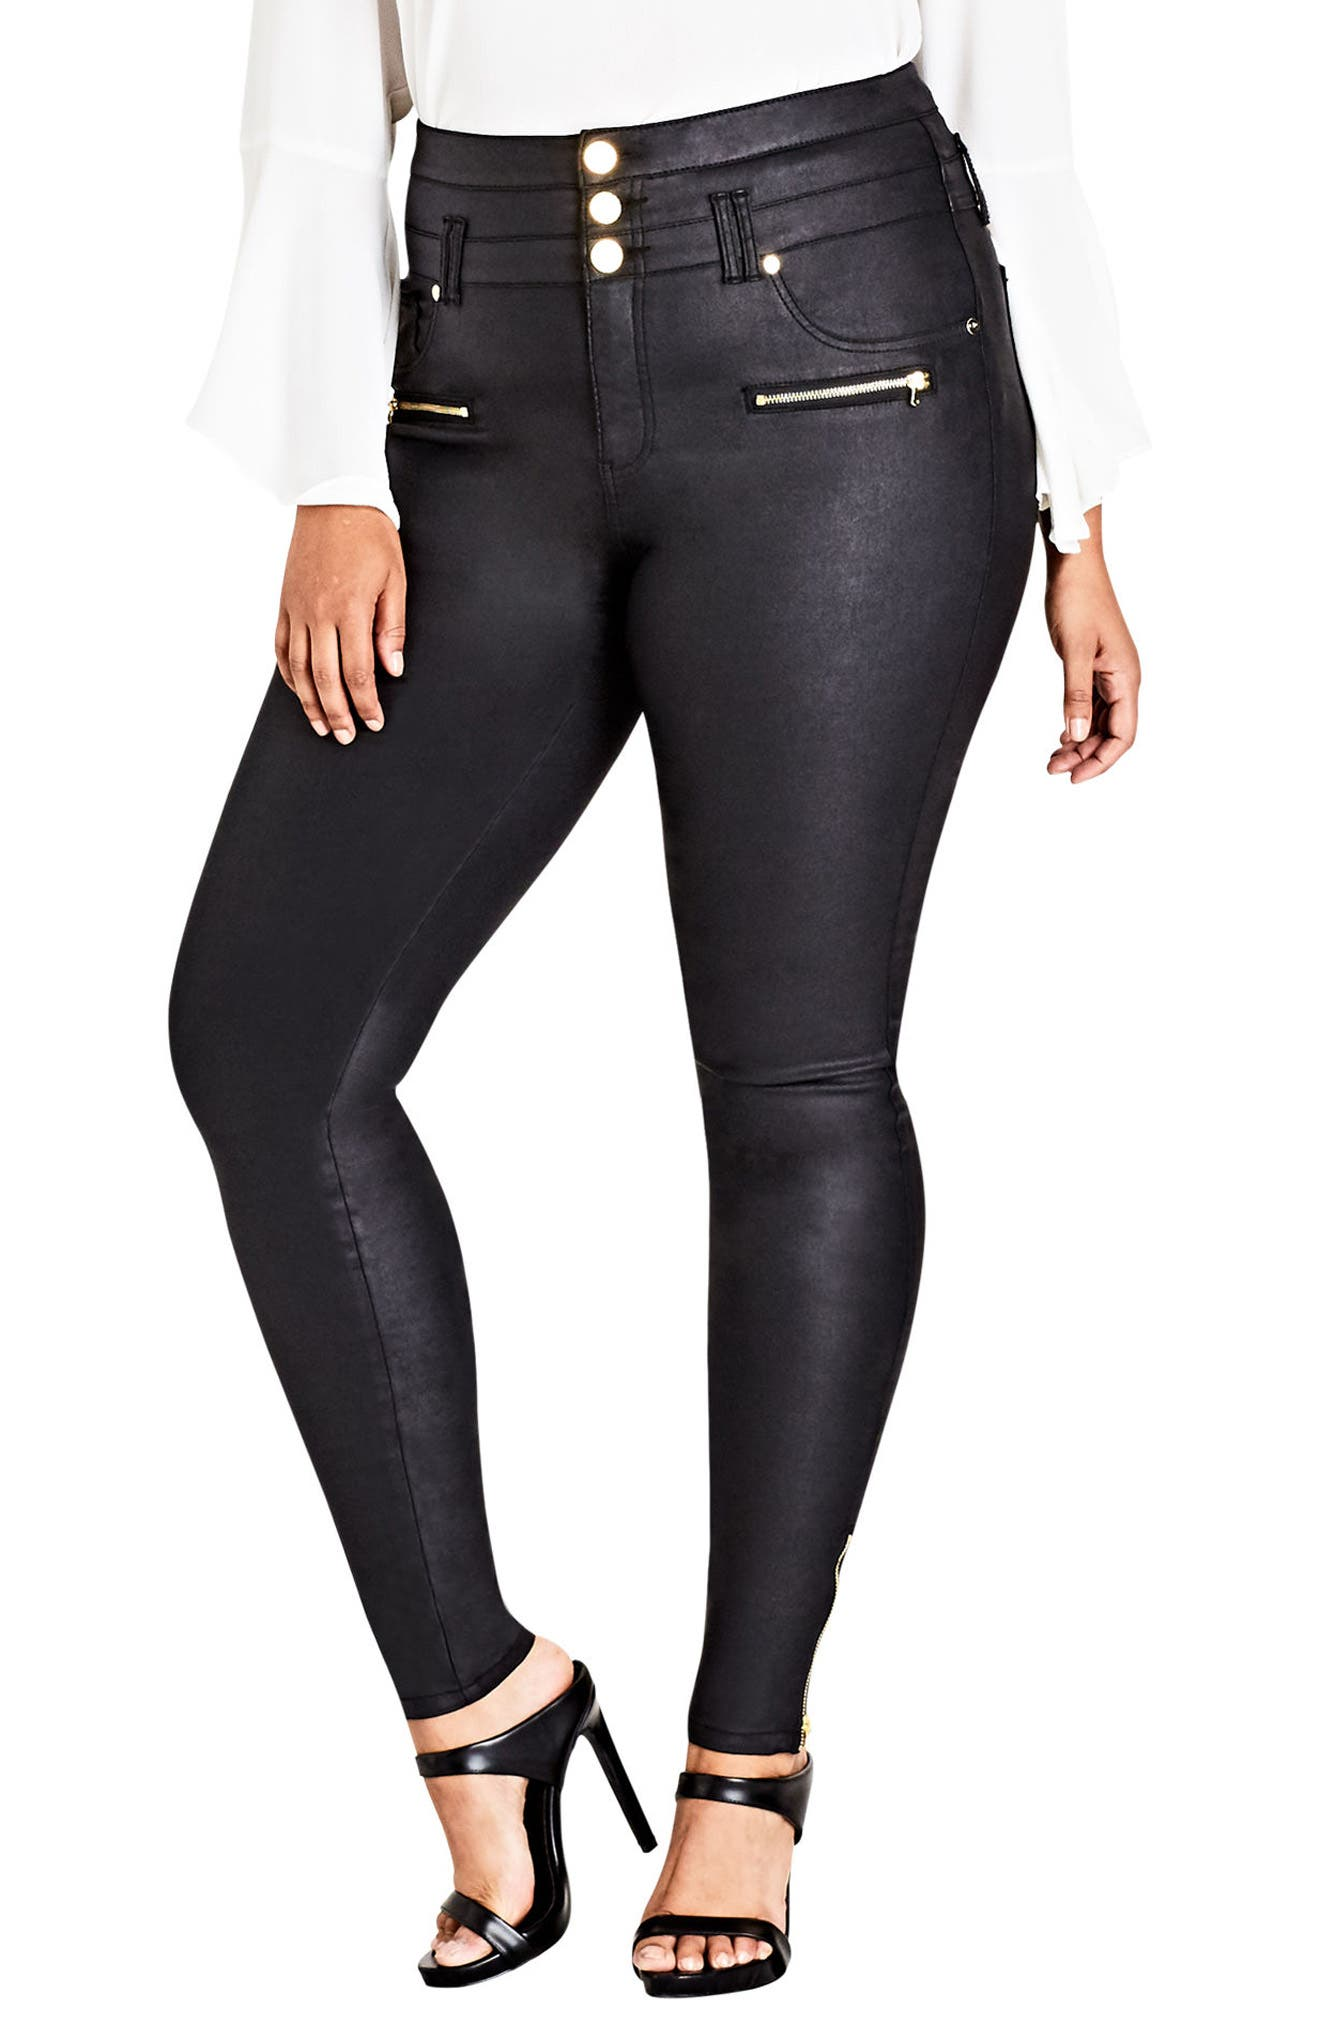 Alternate Image 1 Selected - City Chic Pick Me Up Stretch Skinny Jeans (Plus Size)